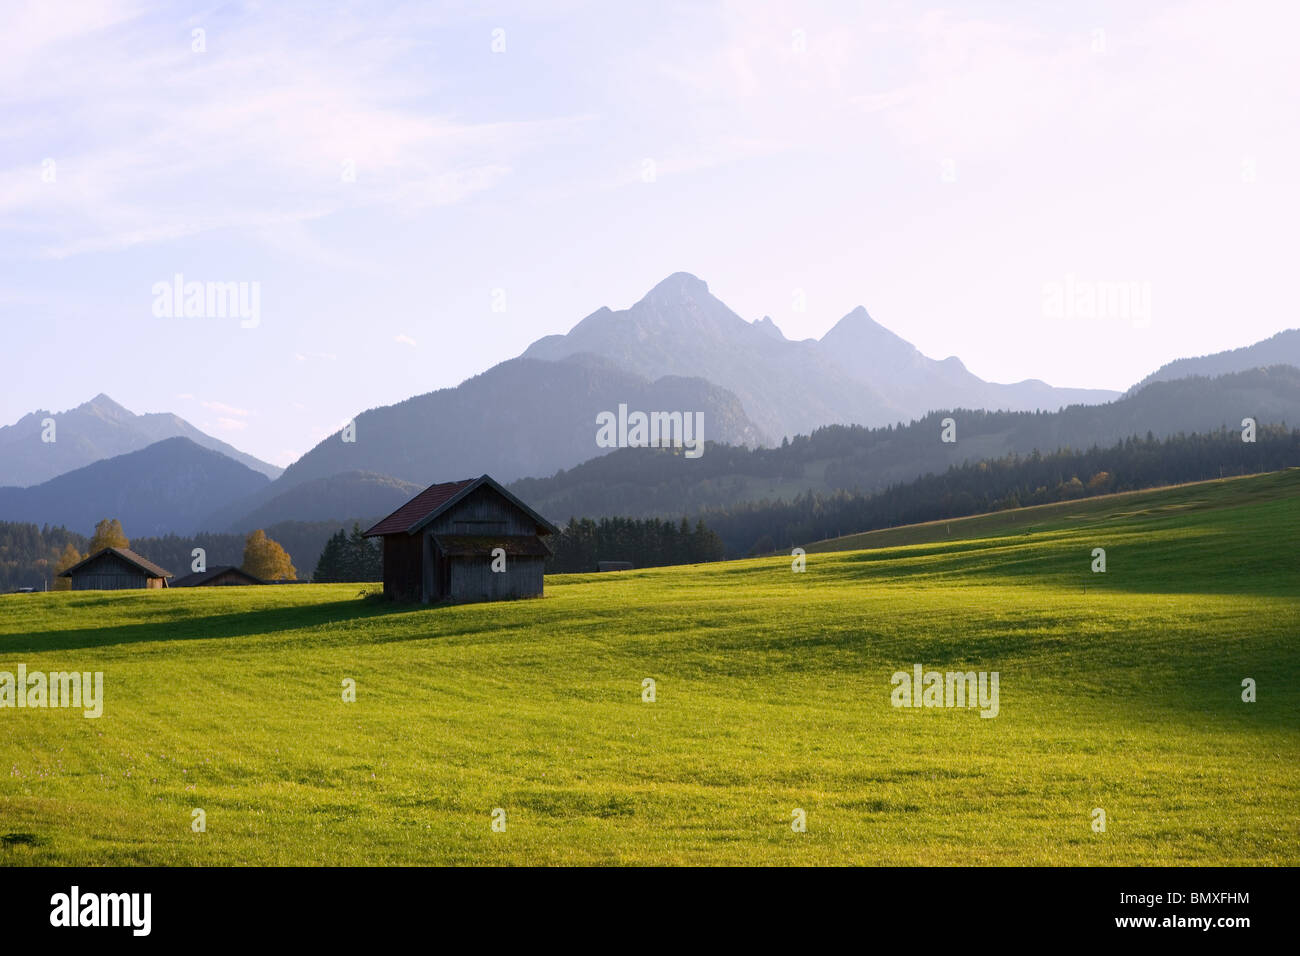 Meadow and karwendel mountains in bavaria - Stock Image